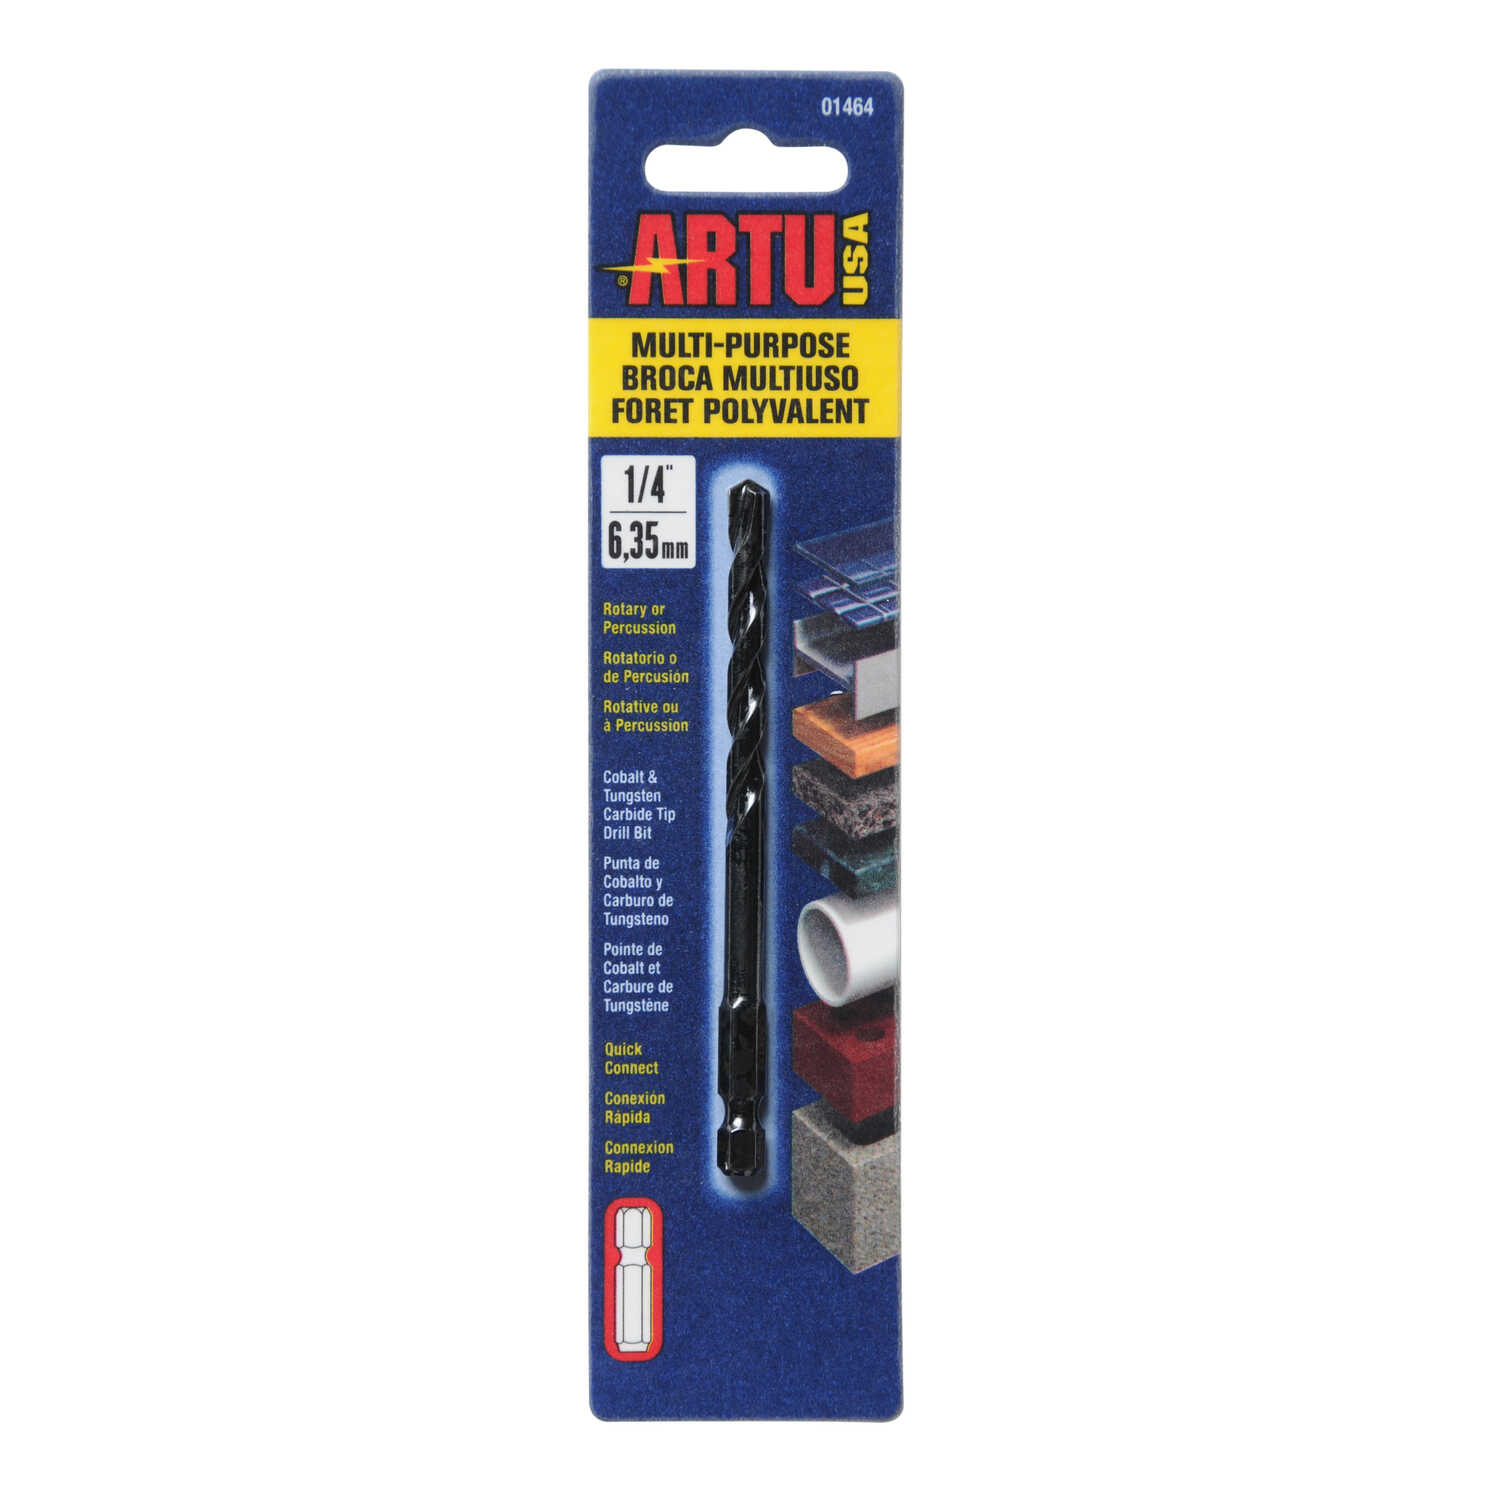 ARTU  1/4 in. Dia. x 4-1/8 in. L Carbide Tipped  Quick-Connect Drill Bit  Quick-Change Hex Shank  1